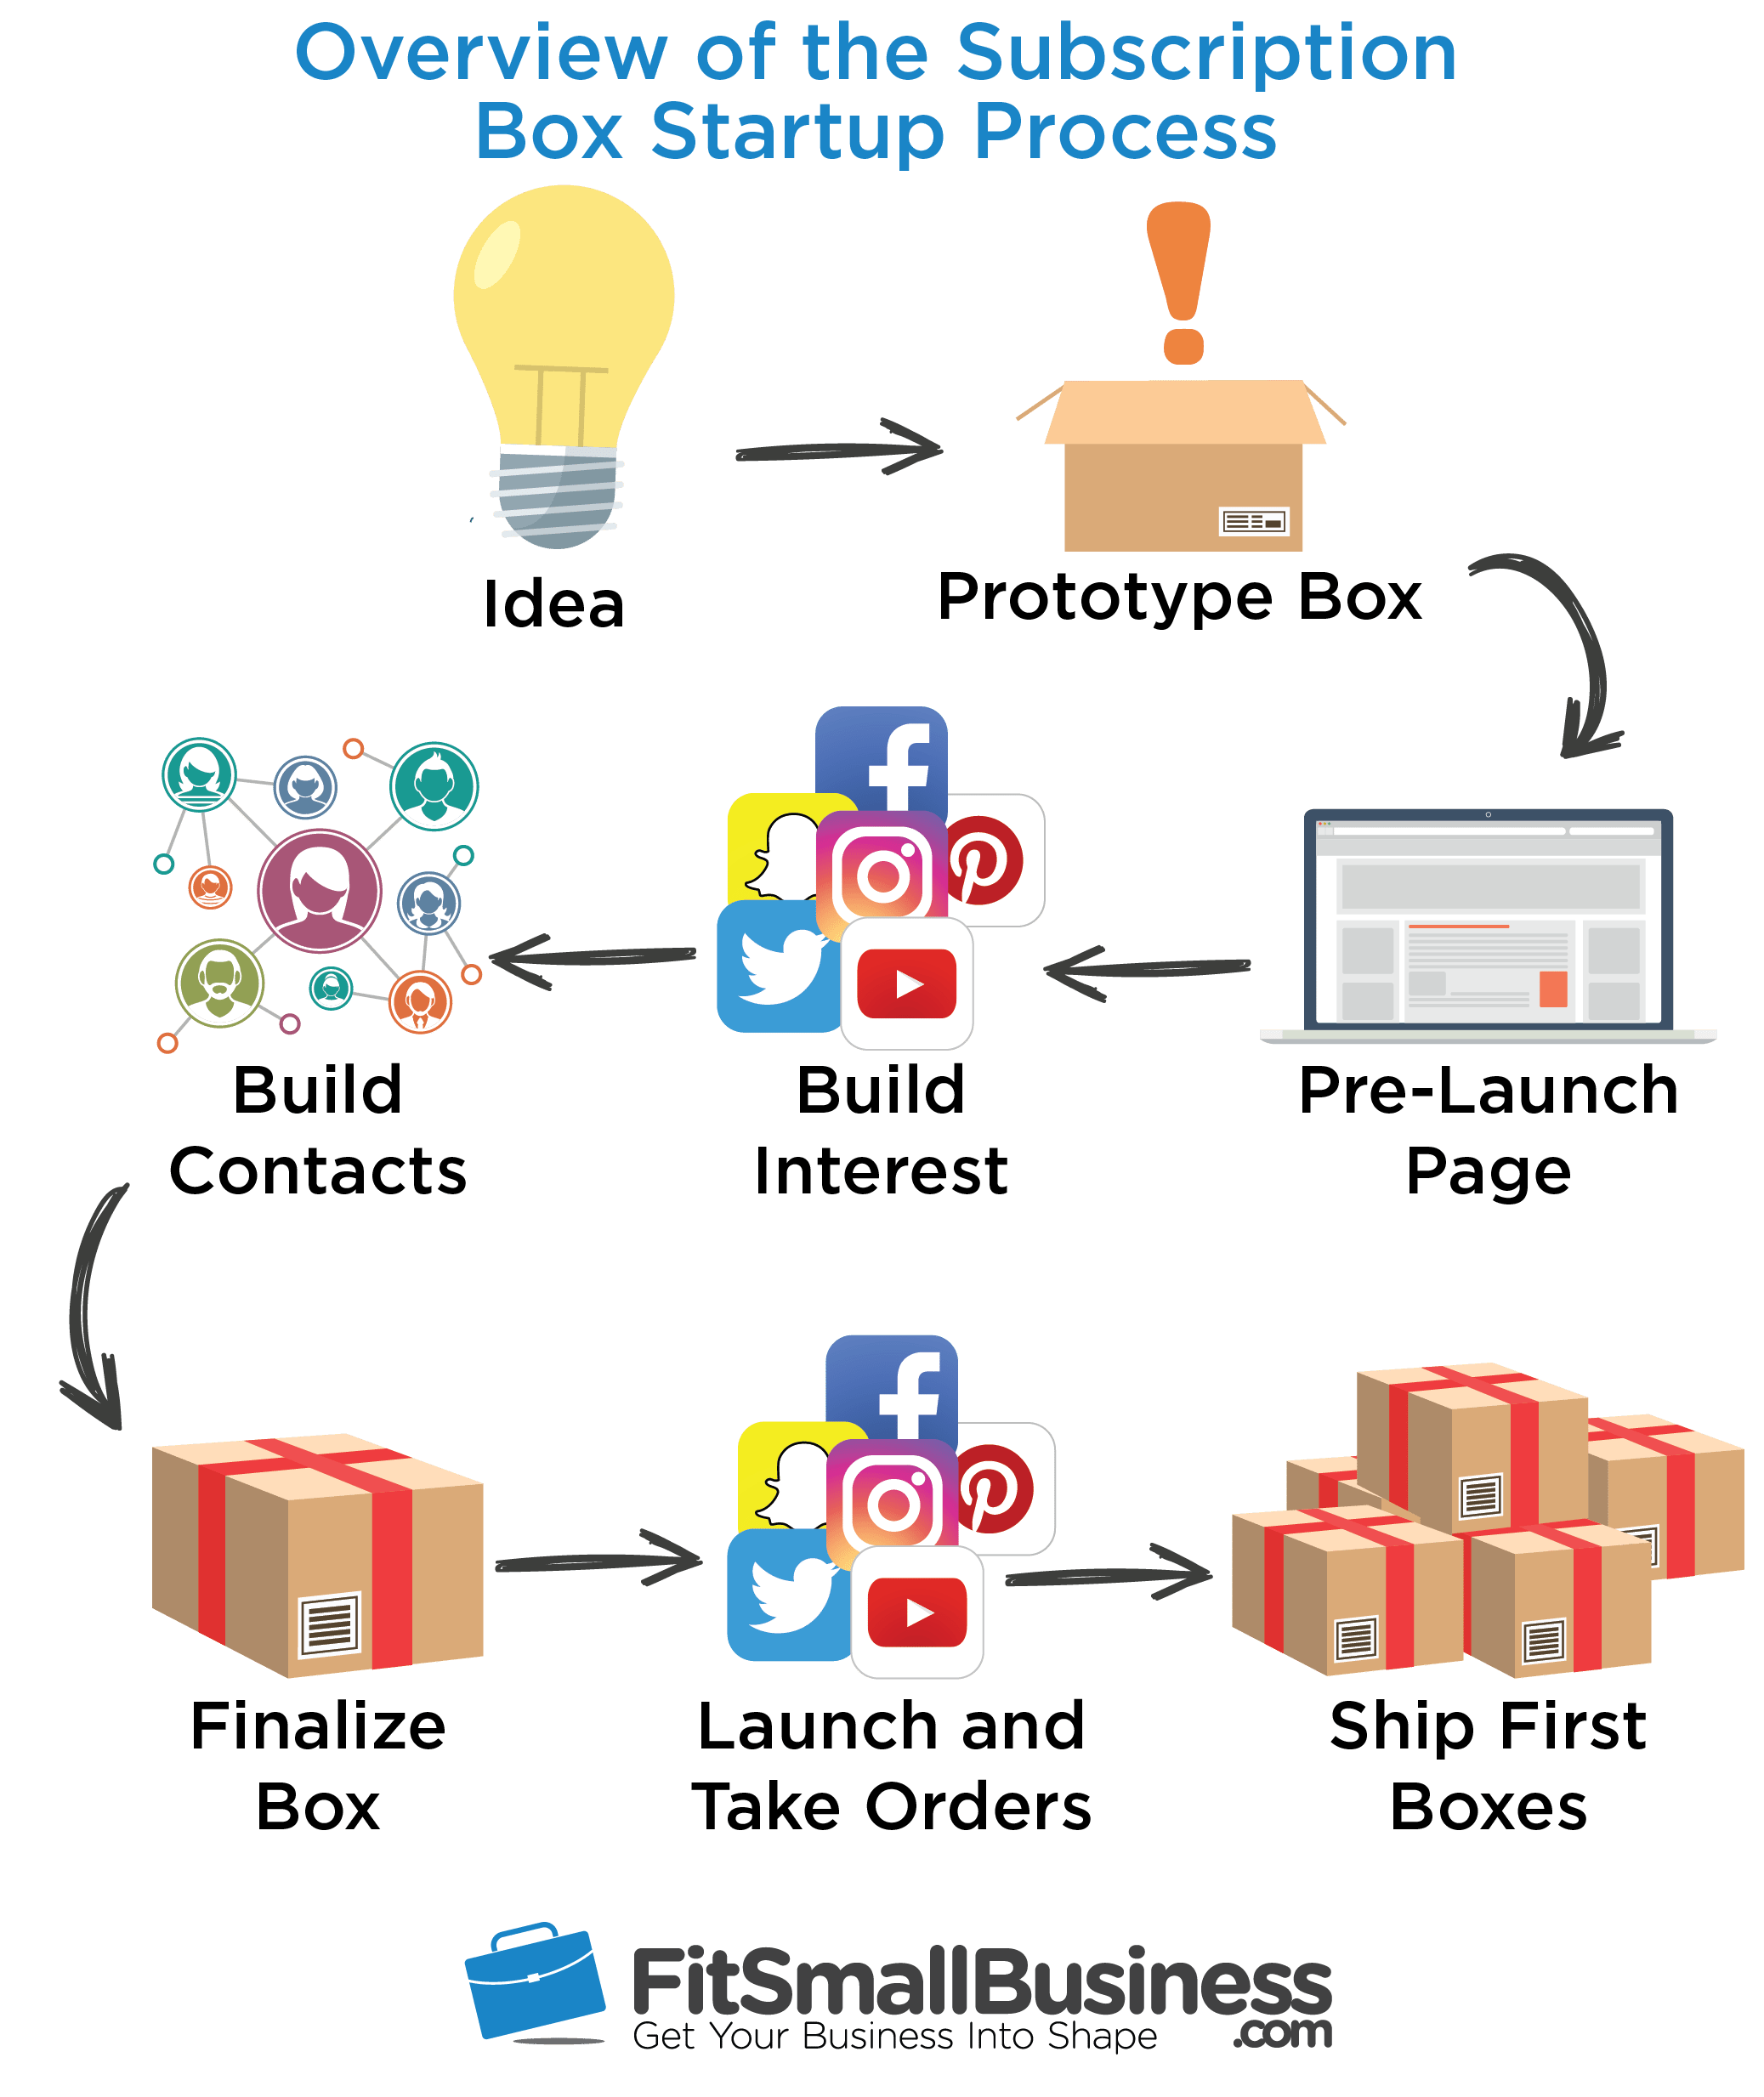 How to start a subscription box business overview